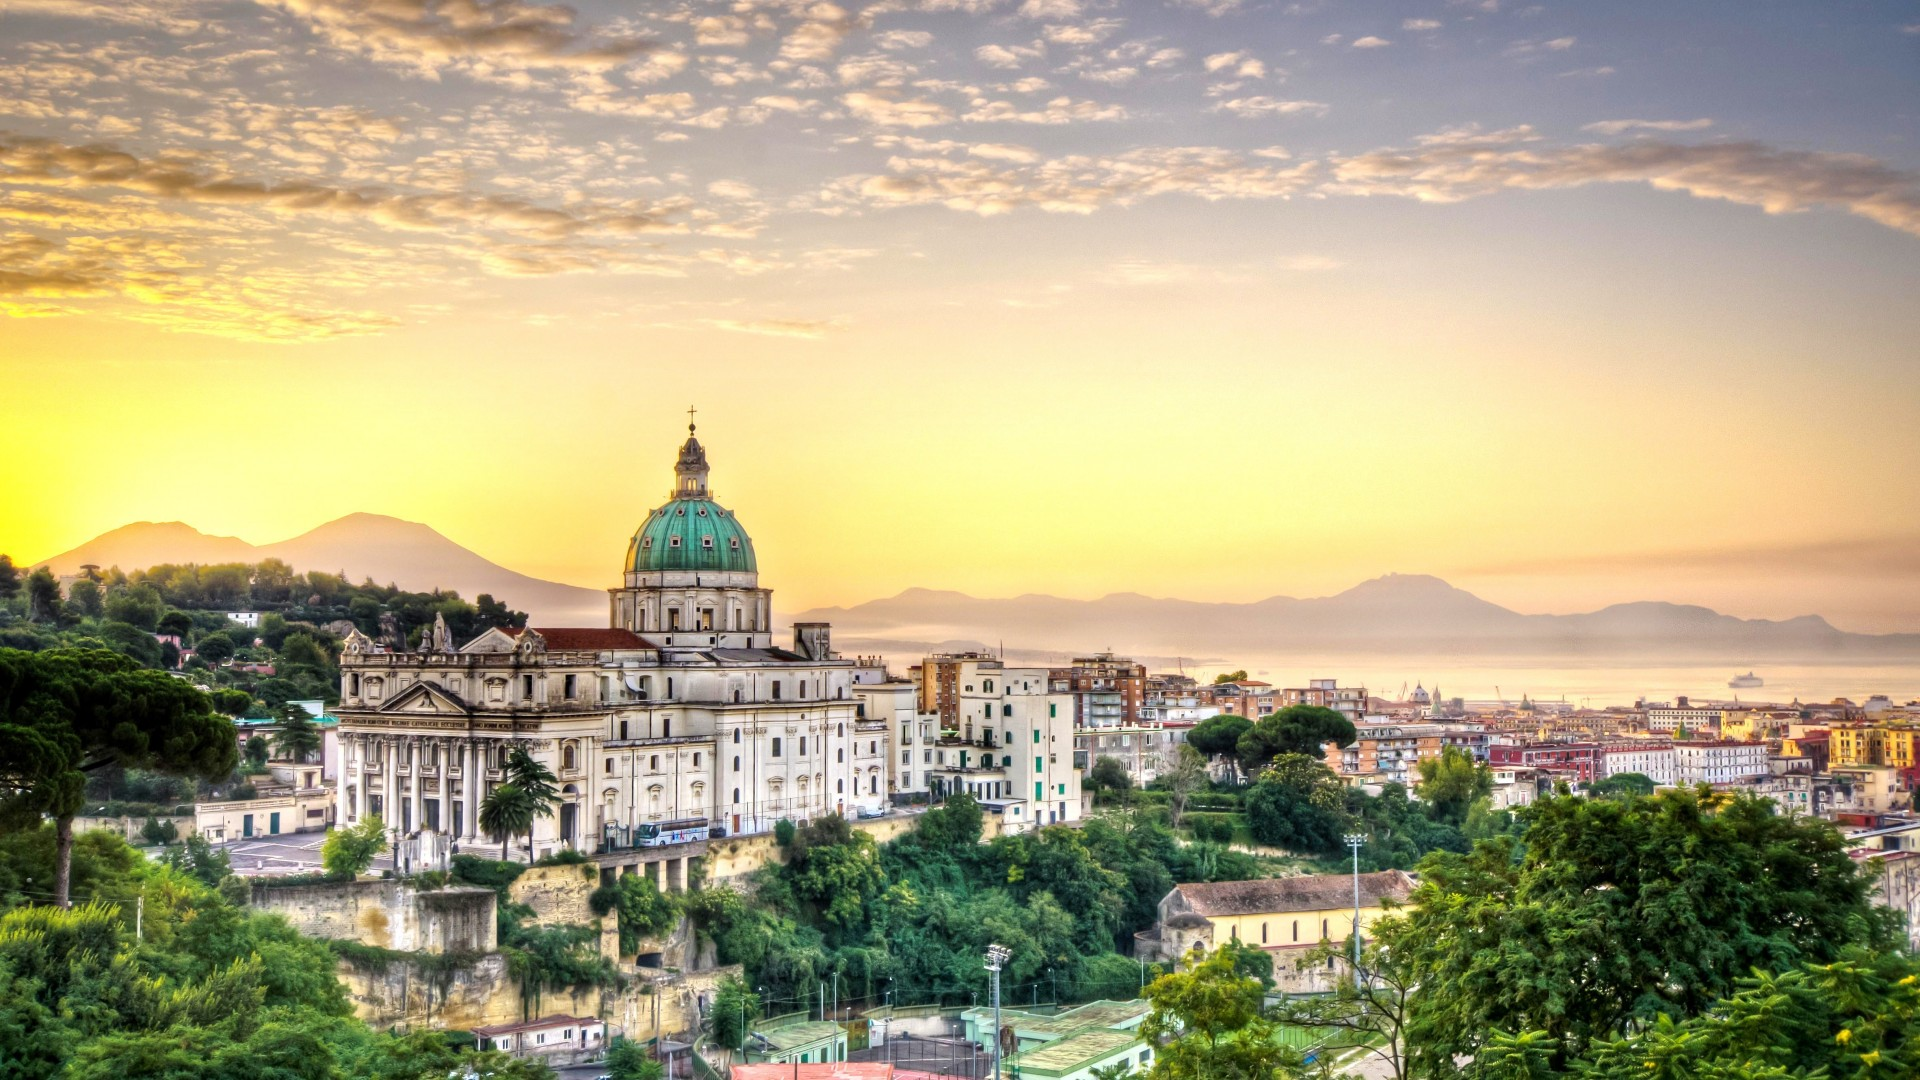 Italy, naples, napoli, city, sky, clouds, hotel, travel (horizontal)